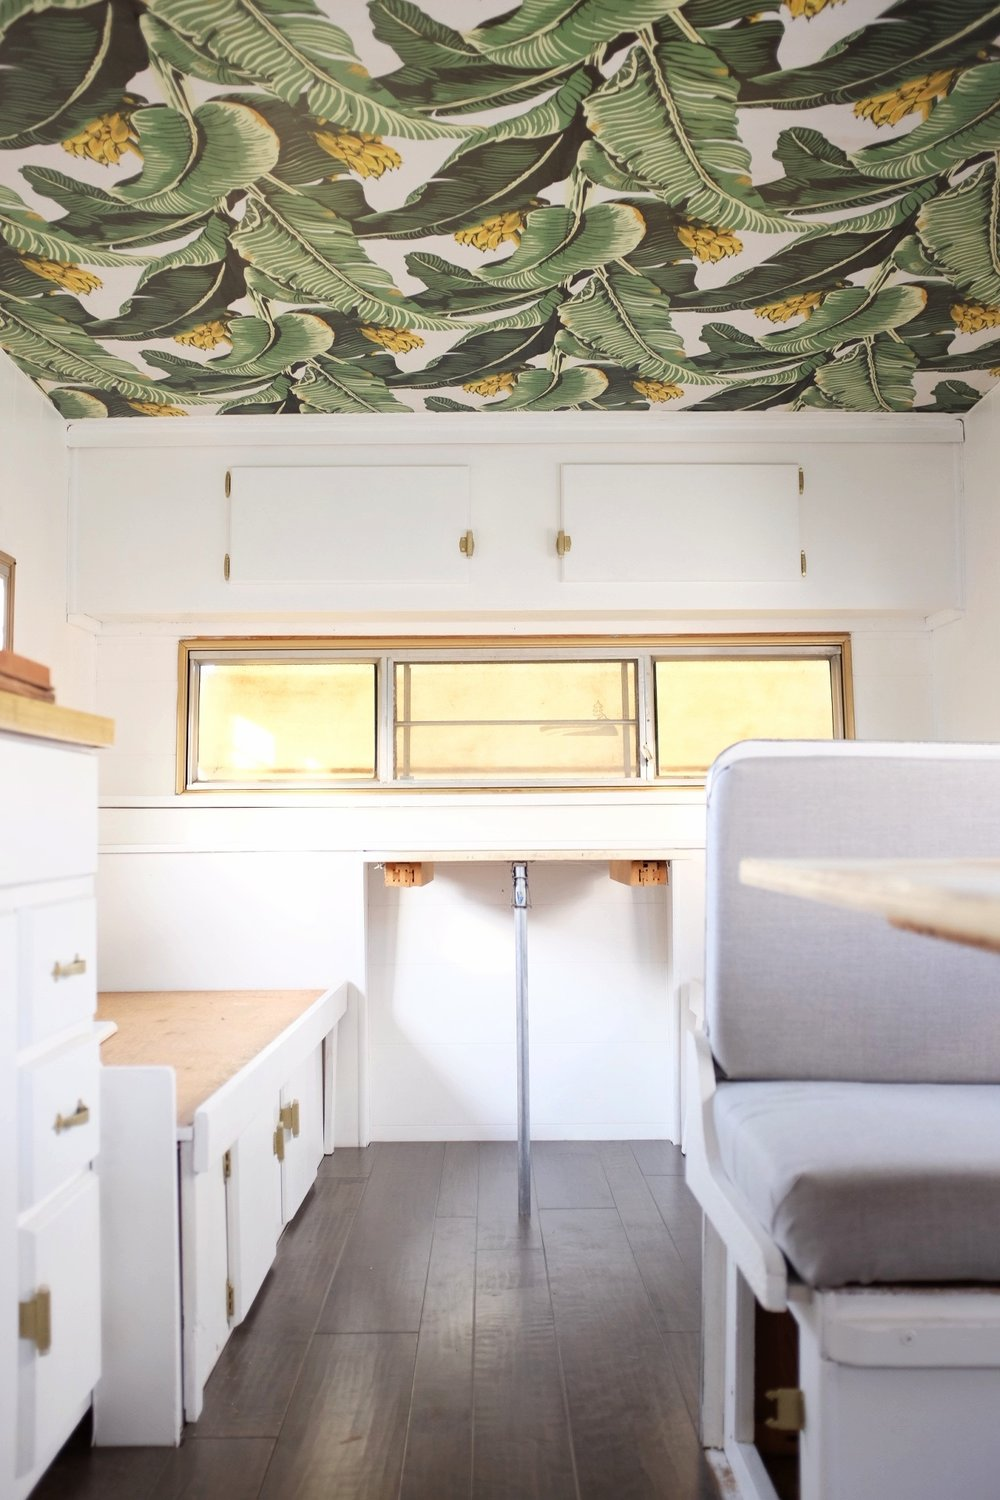 Camper ceiling wallpapered with Milton & King's Jungle Palm